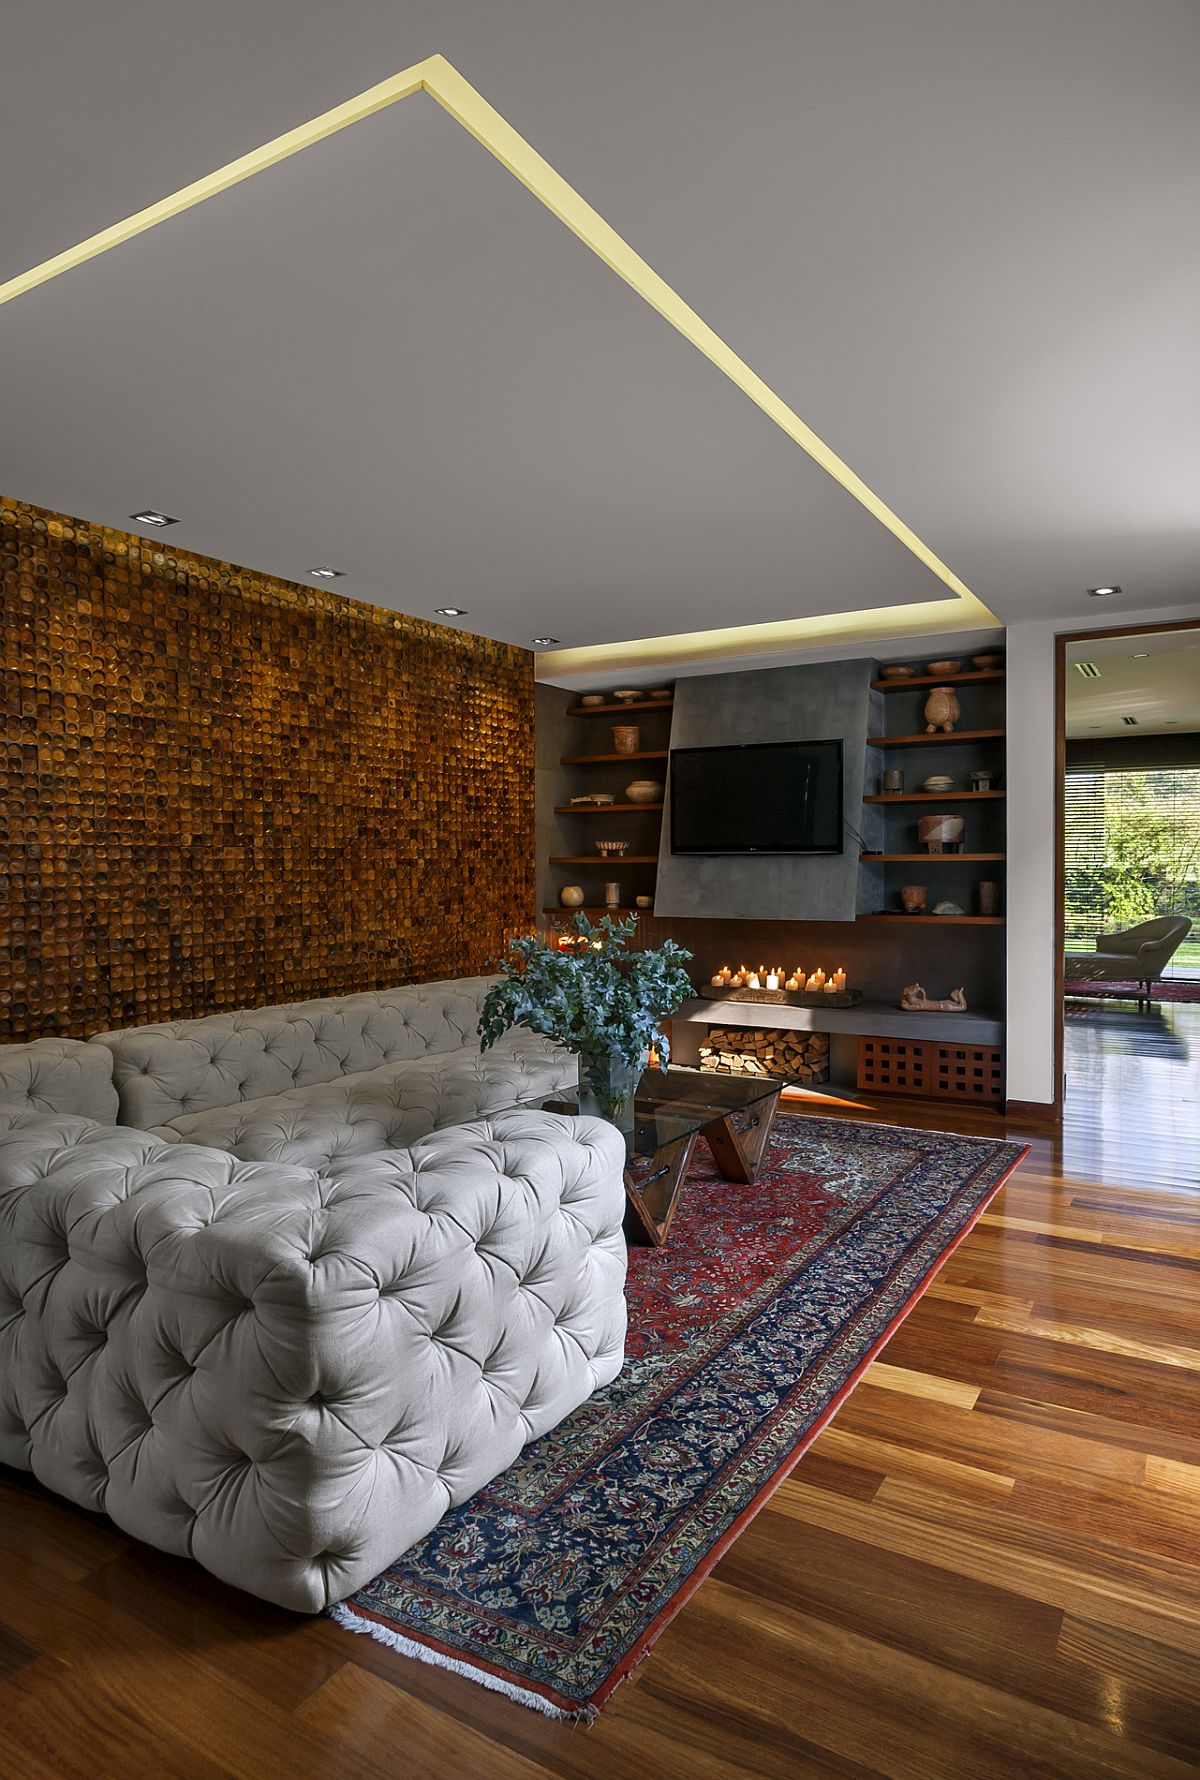 Stunning-living-room-with-accent-wall-that-adds-textural-beauty